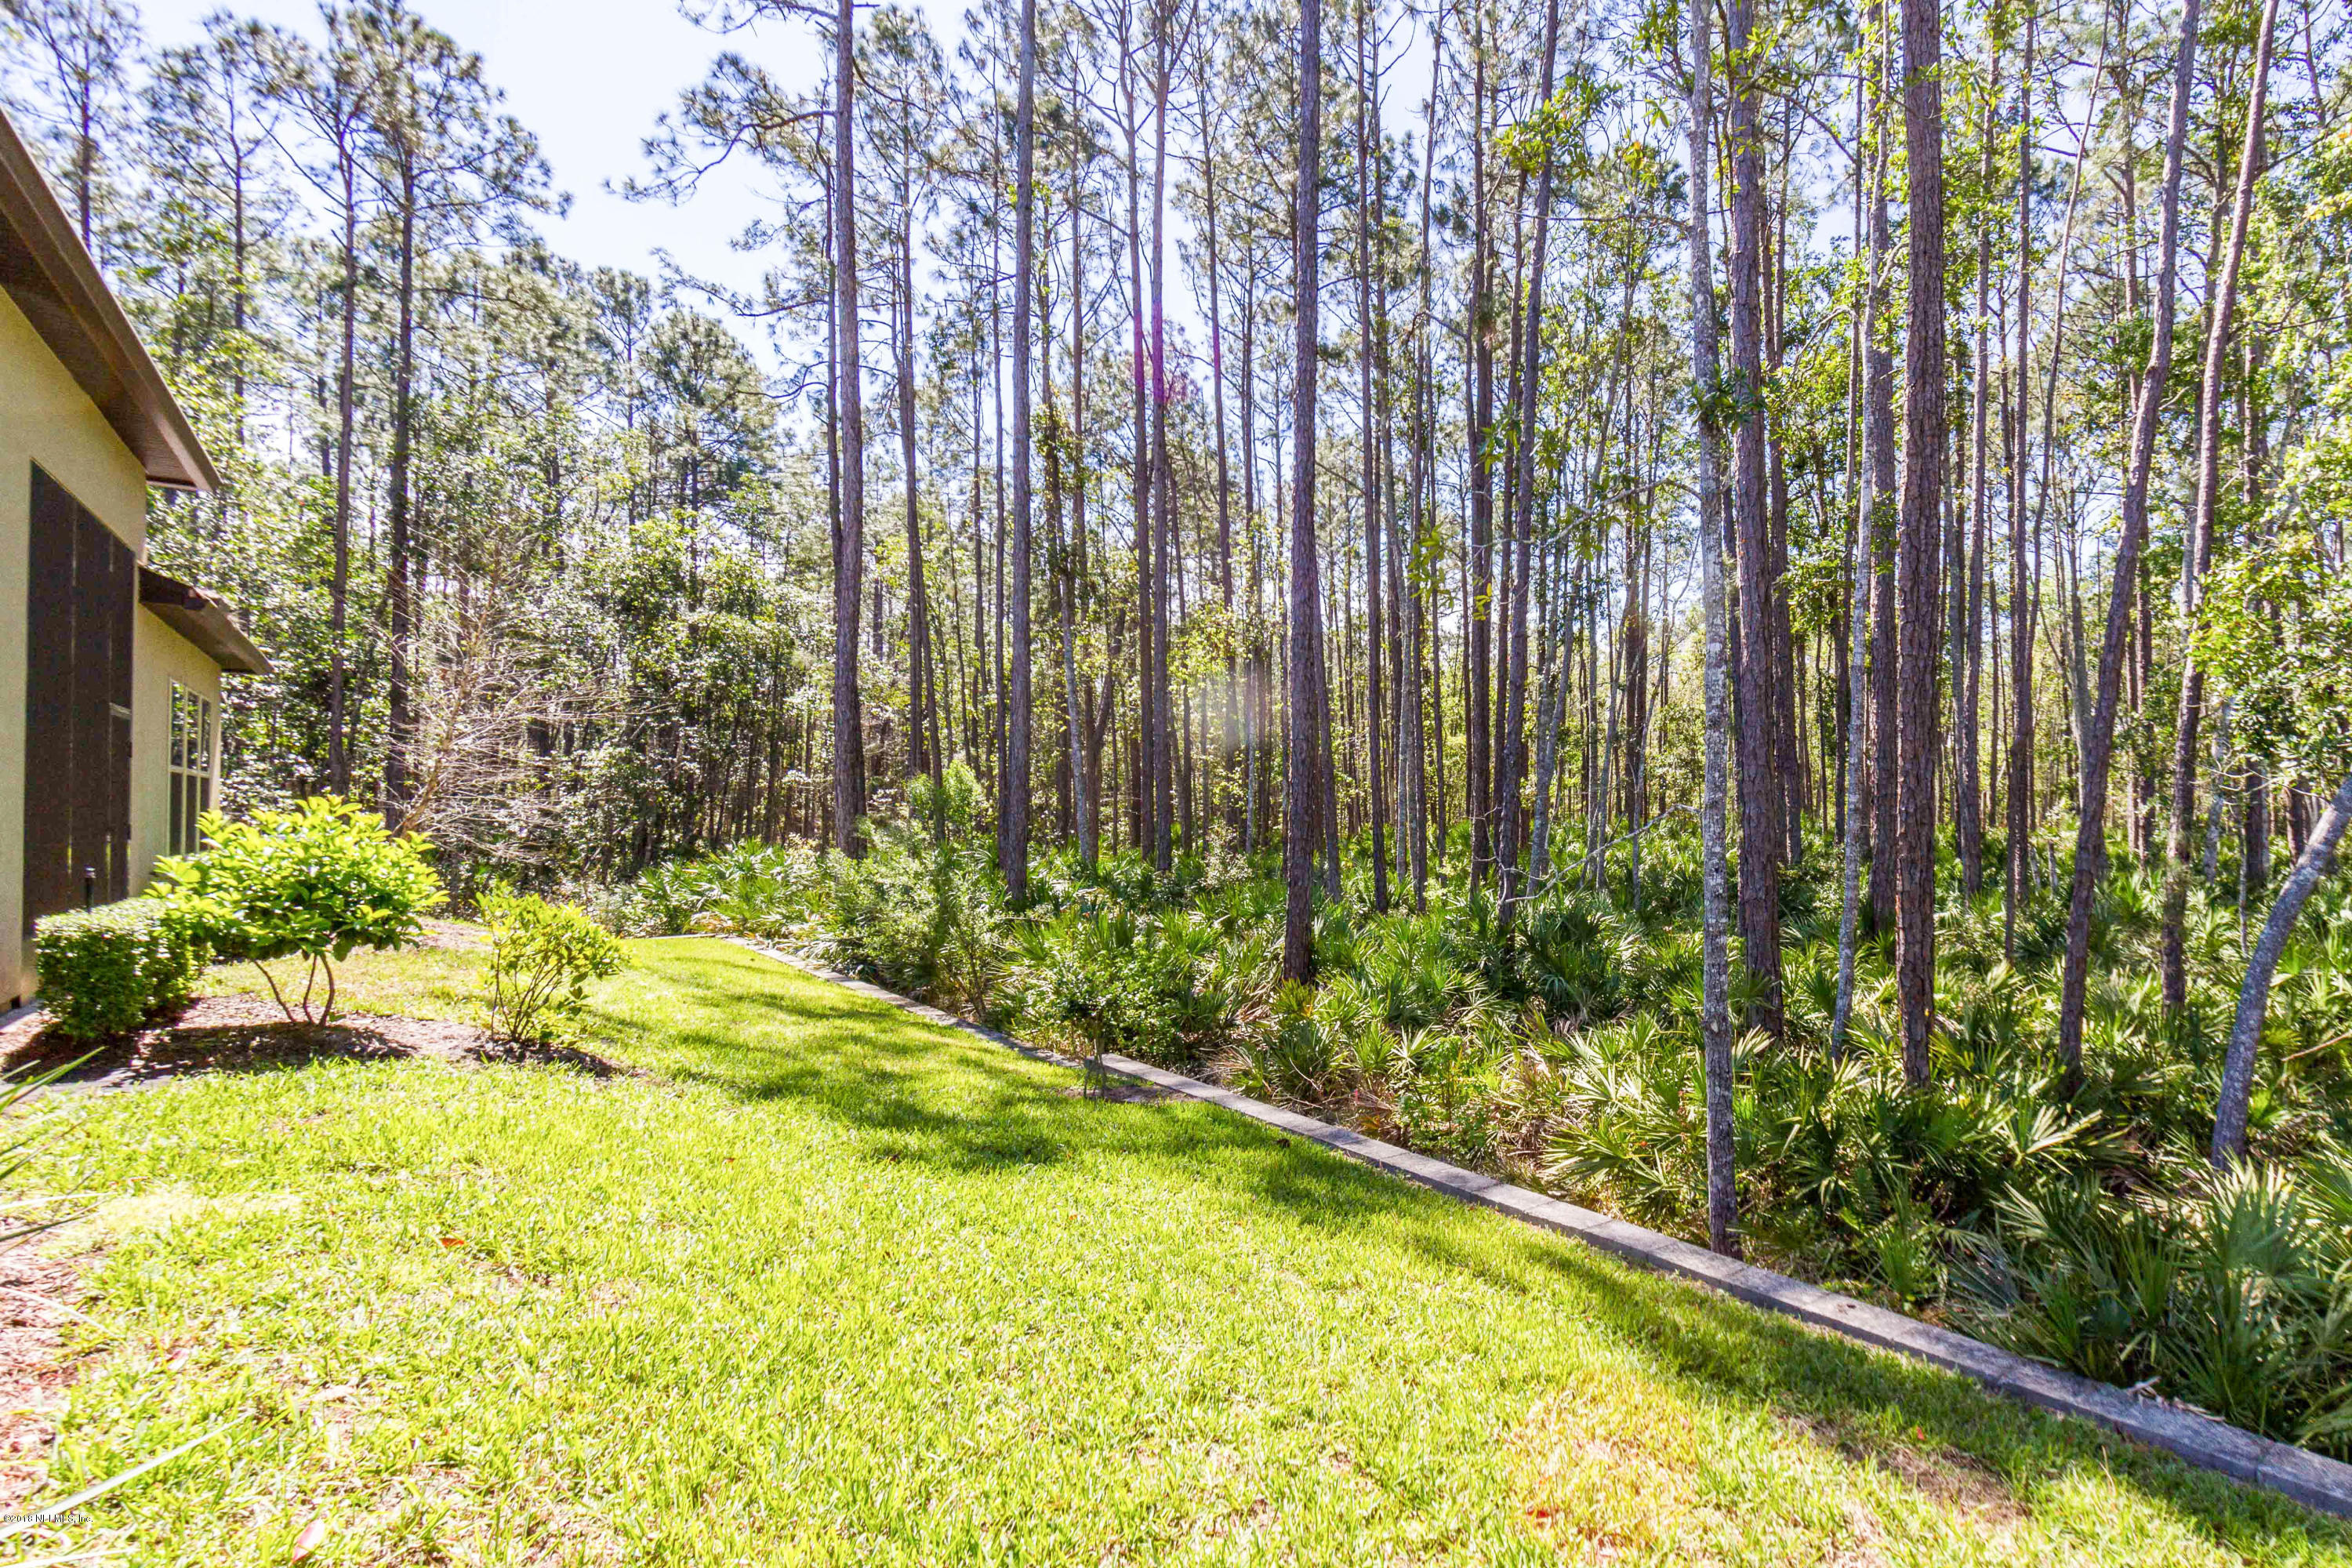 154 CRESTWAY, JACKSONVILLE, FLORIDA 32081, 2 Bedrooms Bedrooms, ,2 BathroomsBathrooms,Residential - single family,For sale,CRESTWAY,925128